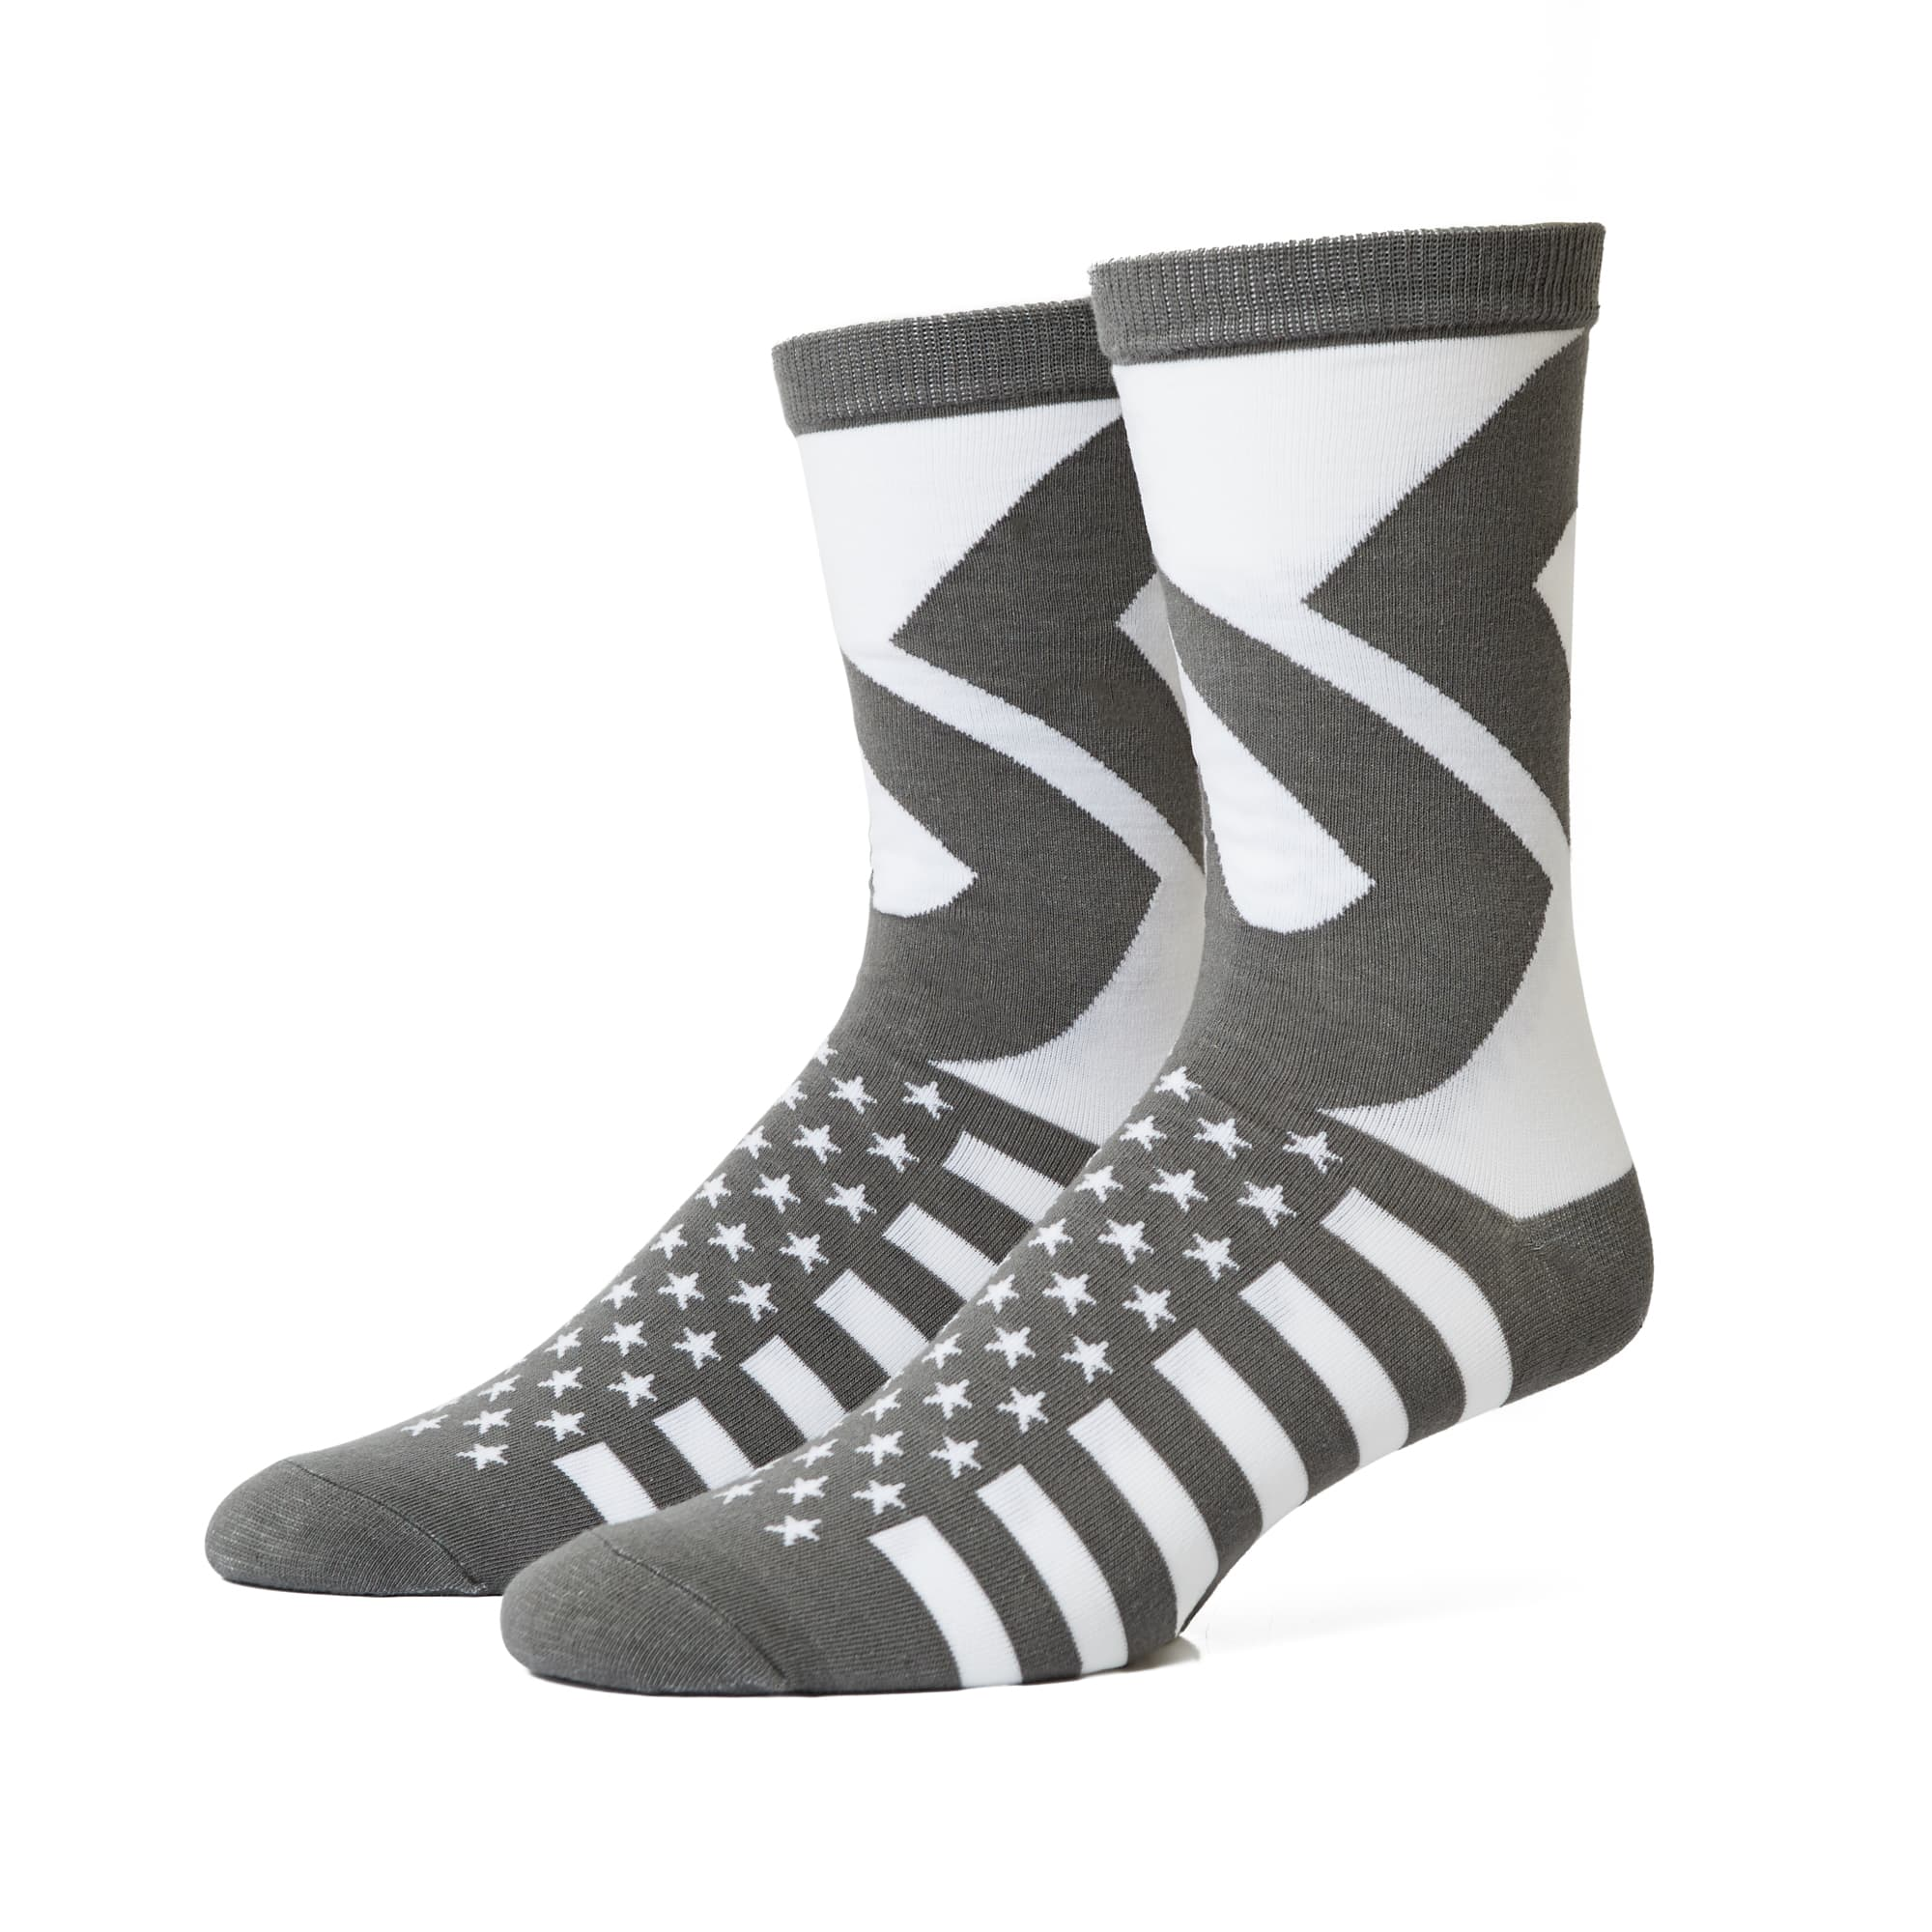 Stars and Stripes 5 Sock - Grey